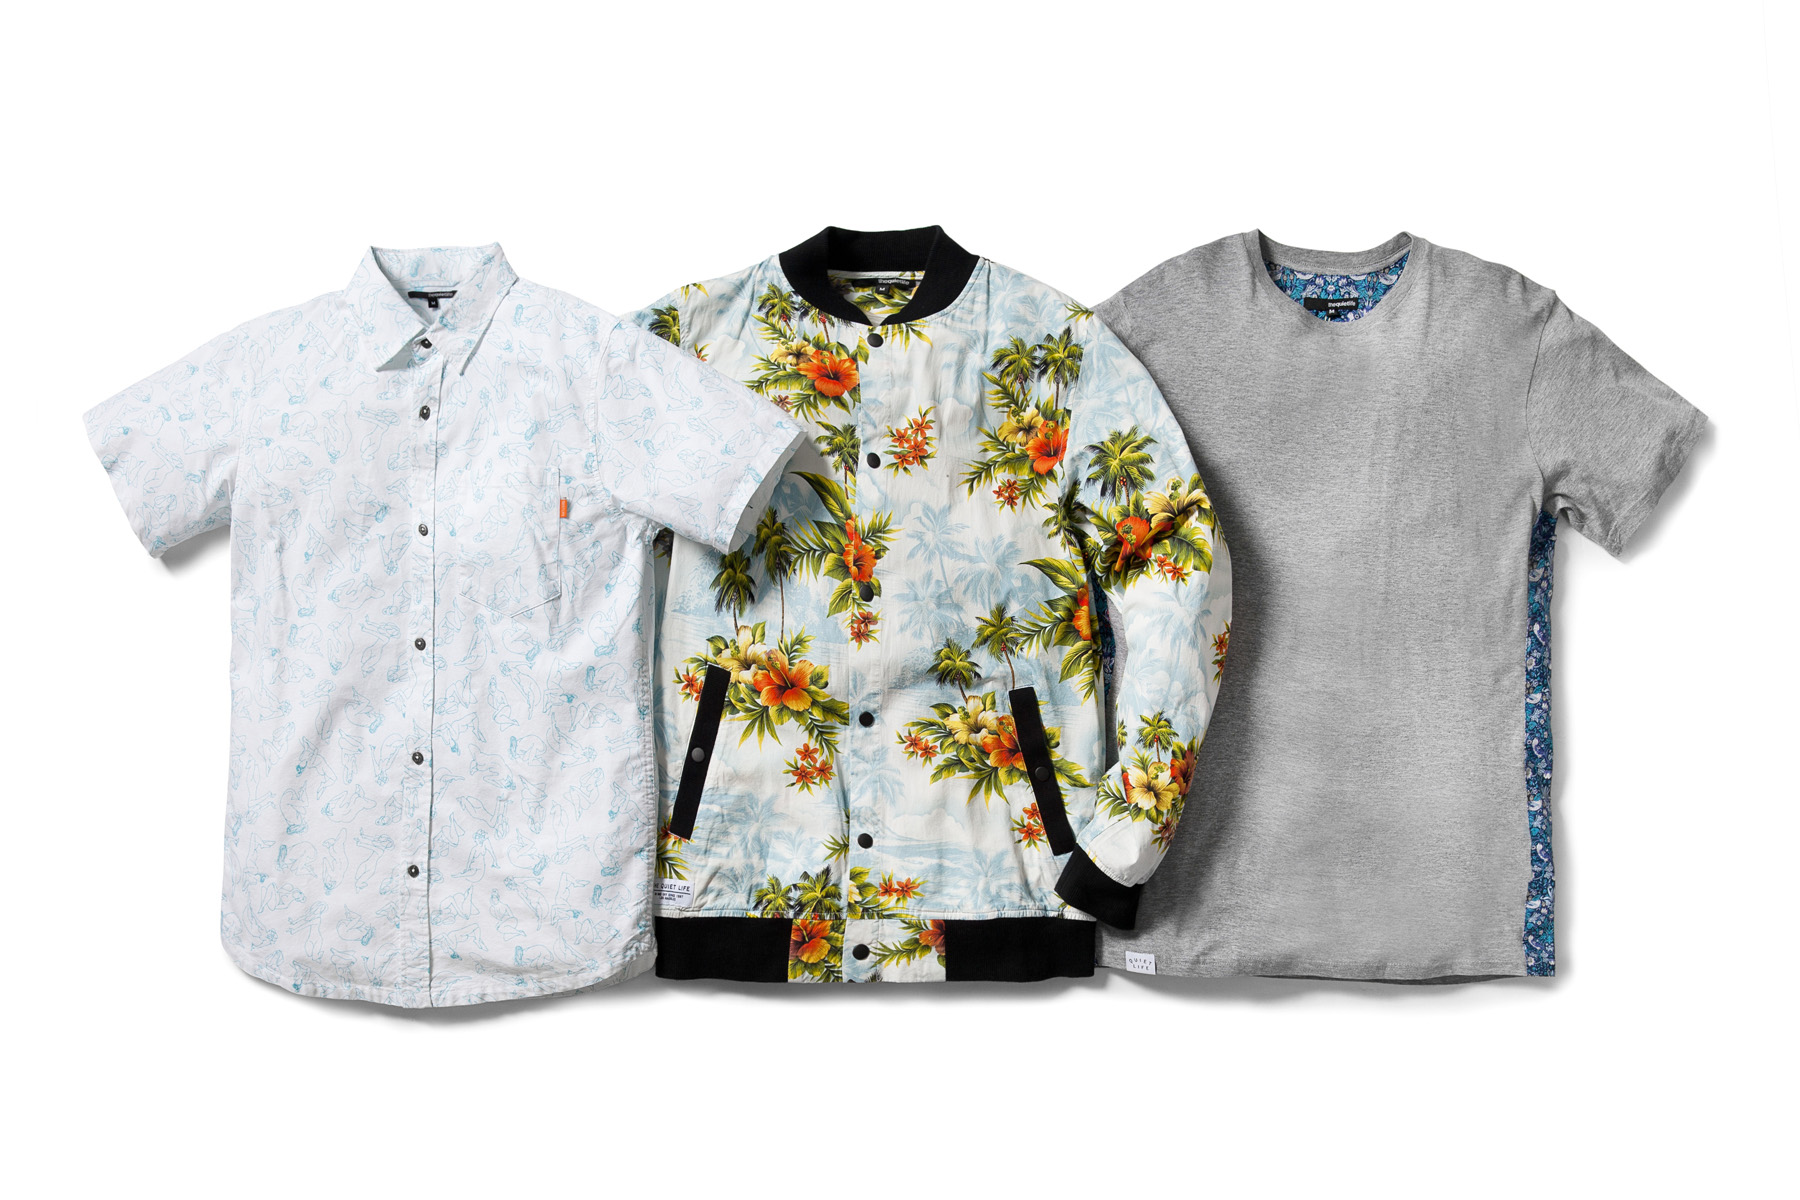 The Quiet Life 2015 Spring/Summer Collection